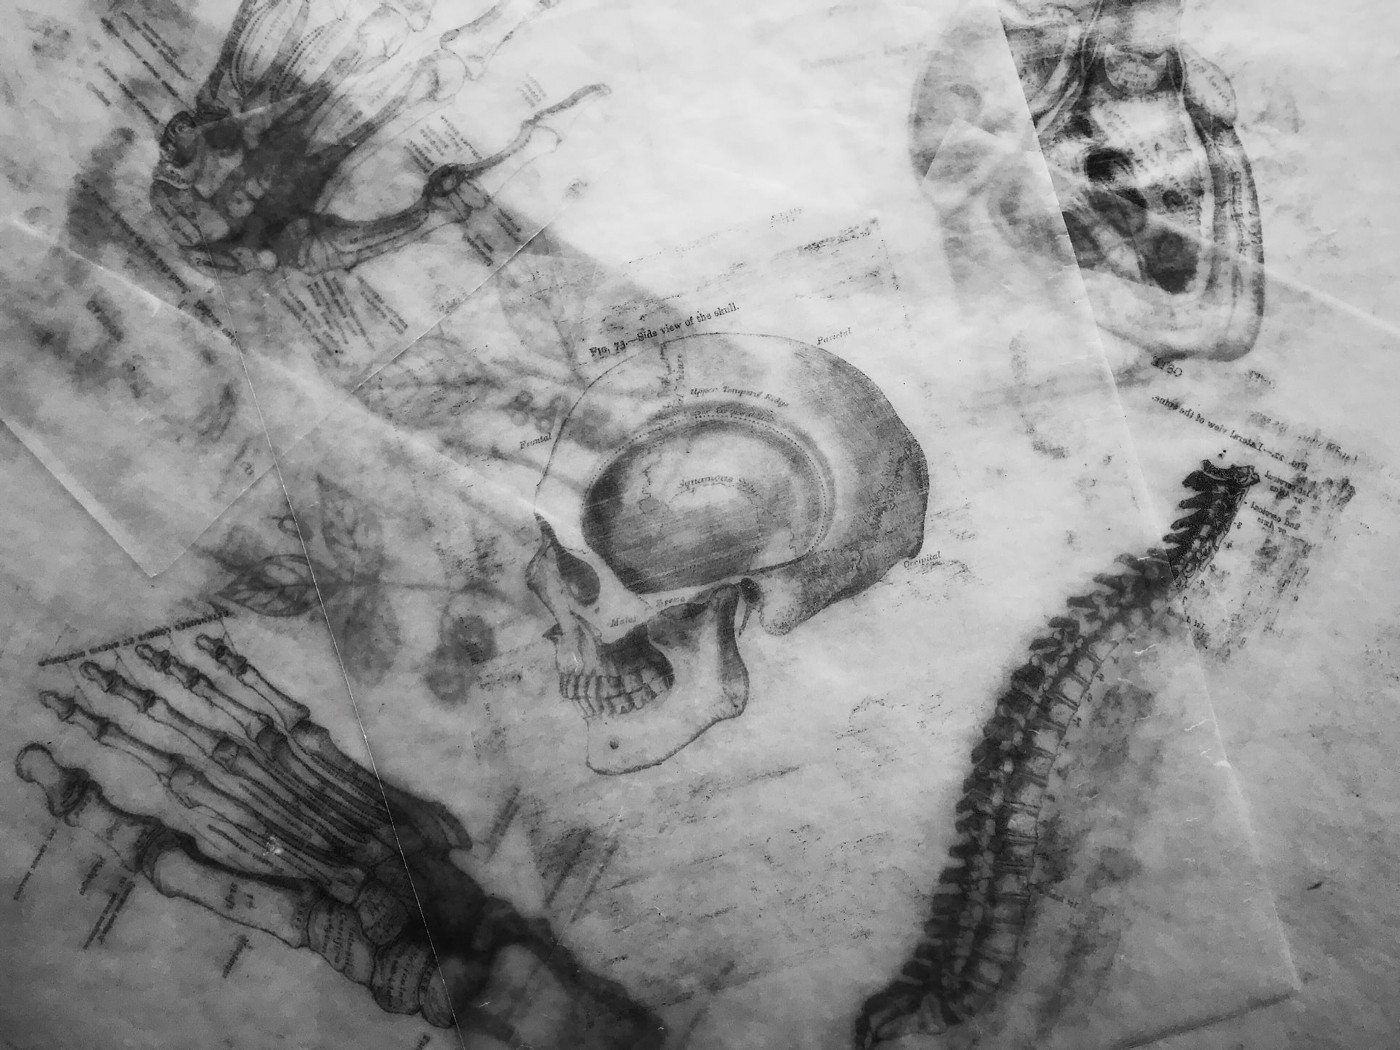 a series of anatomical sketches featured a skull, foot, and spine